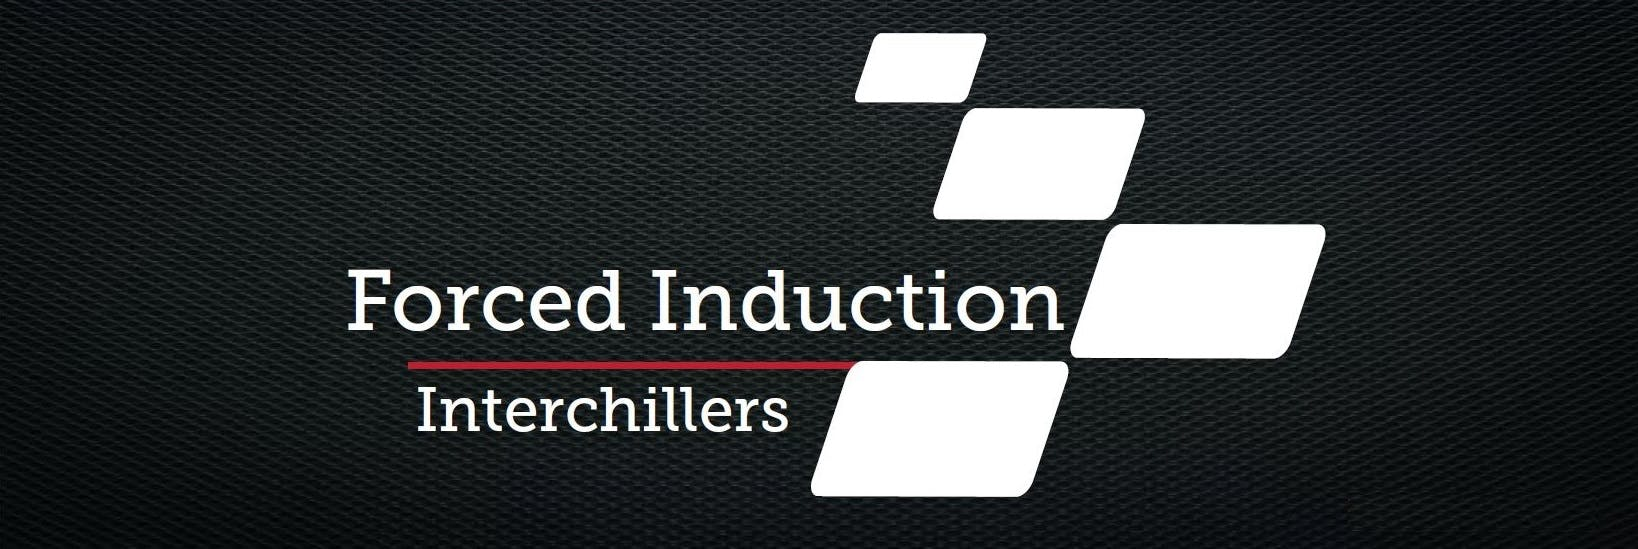 Forced Induction Interchillers